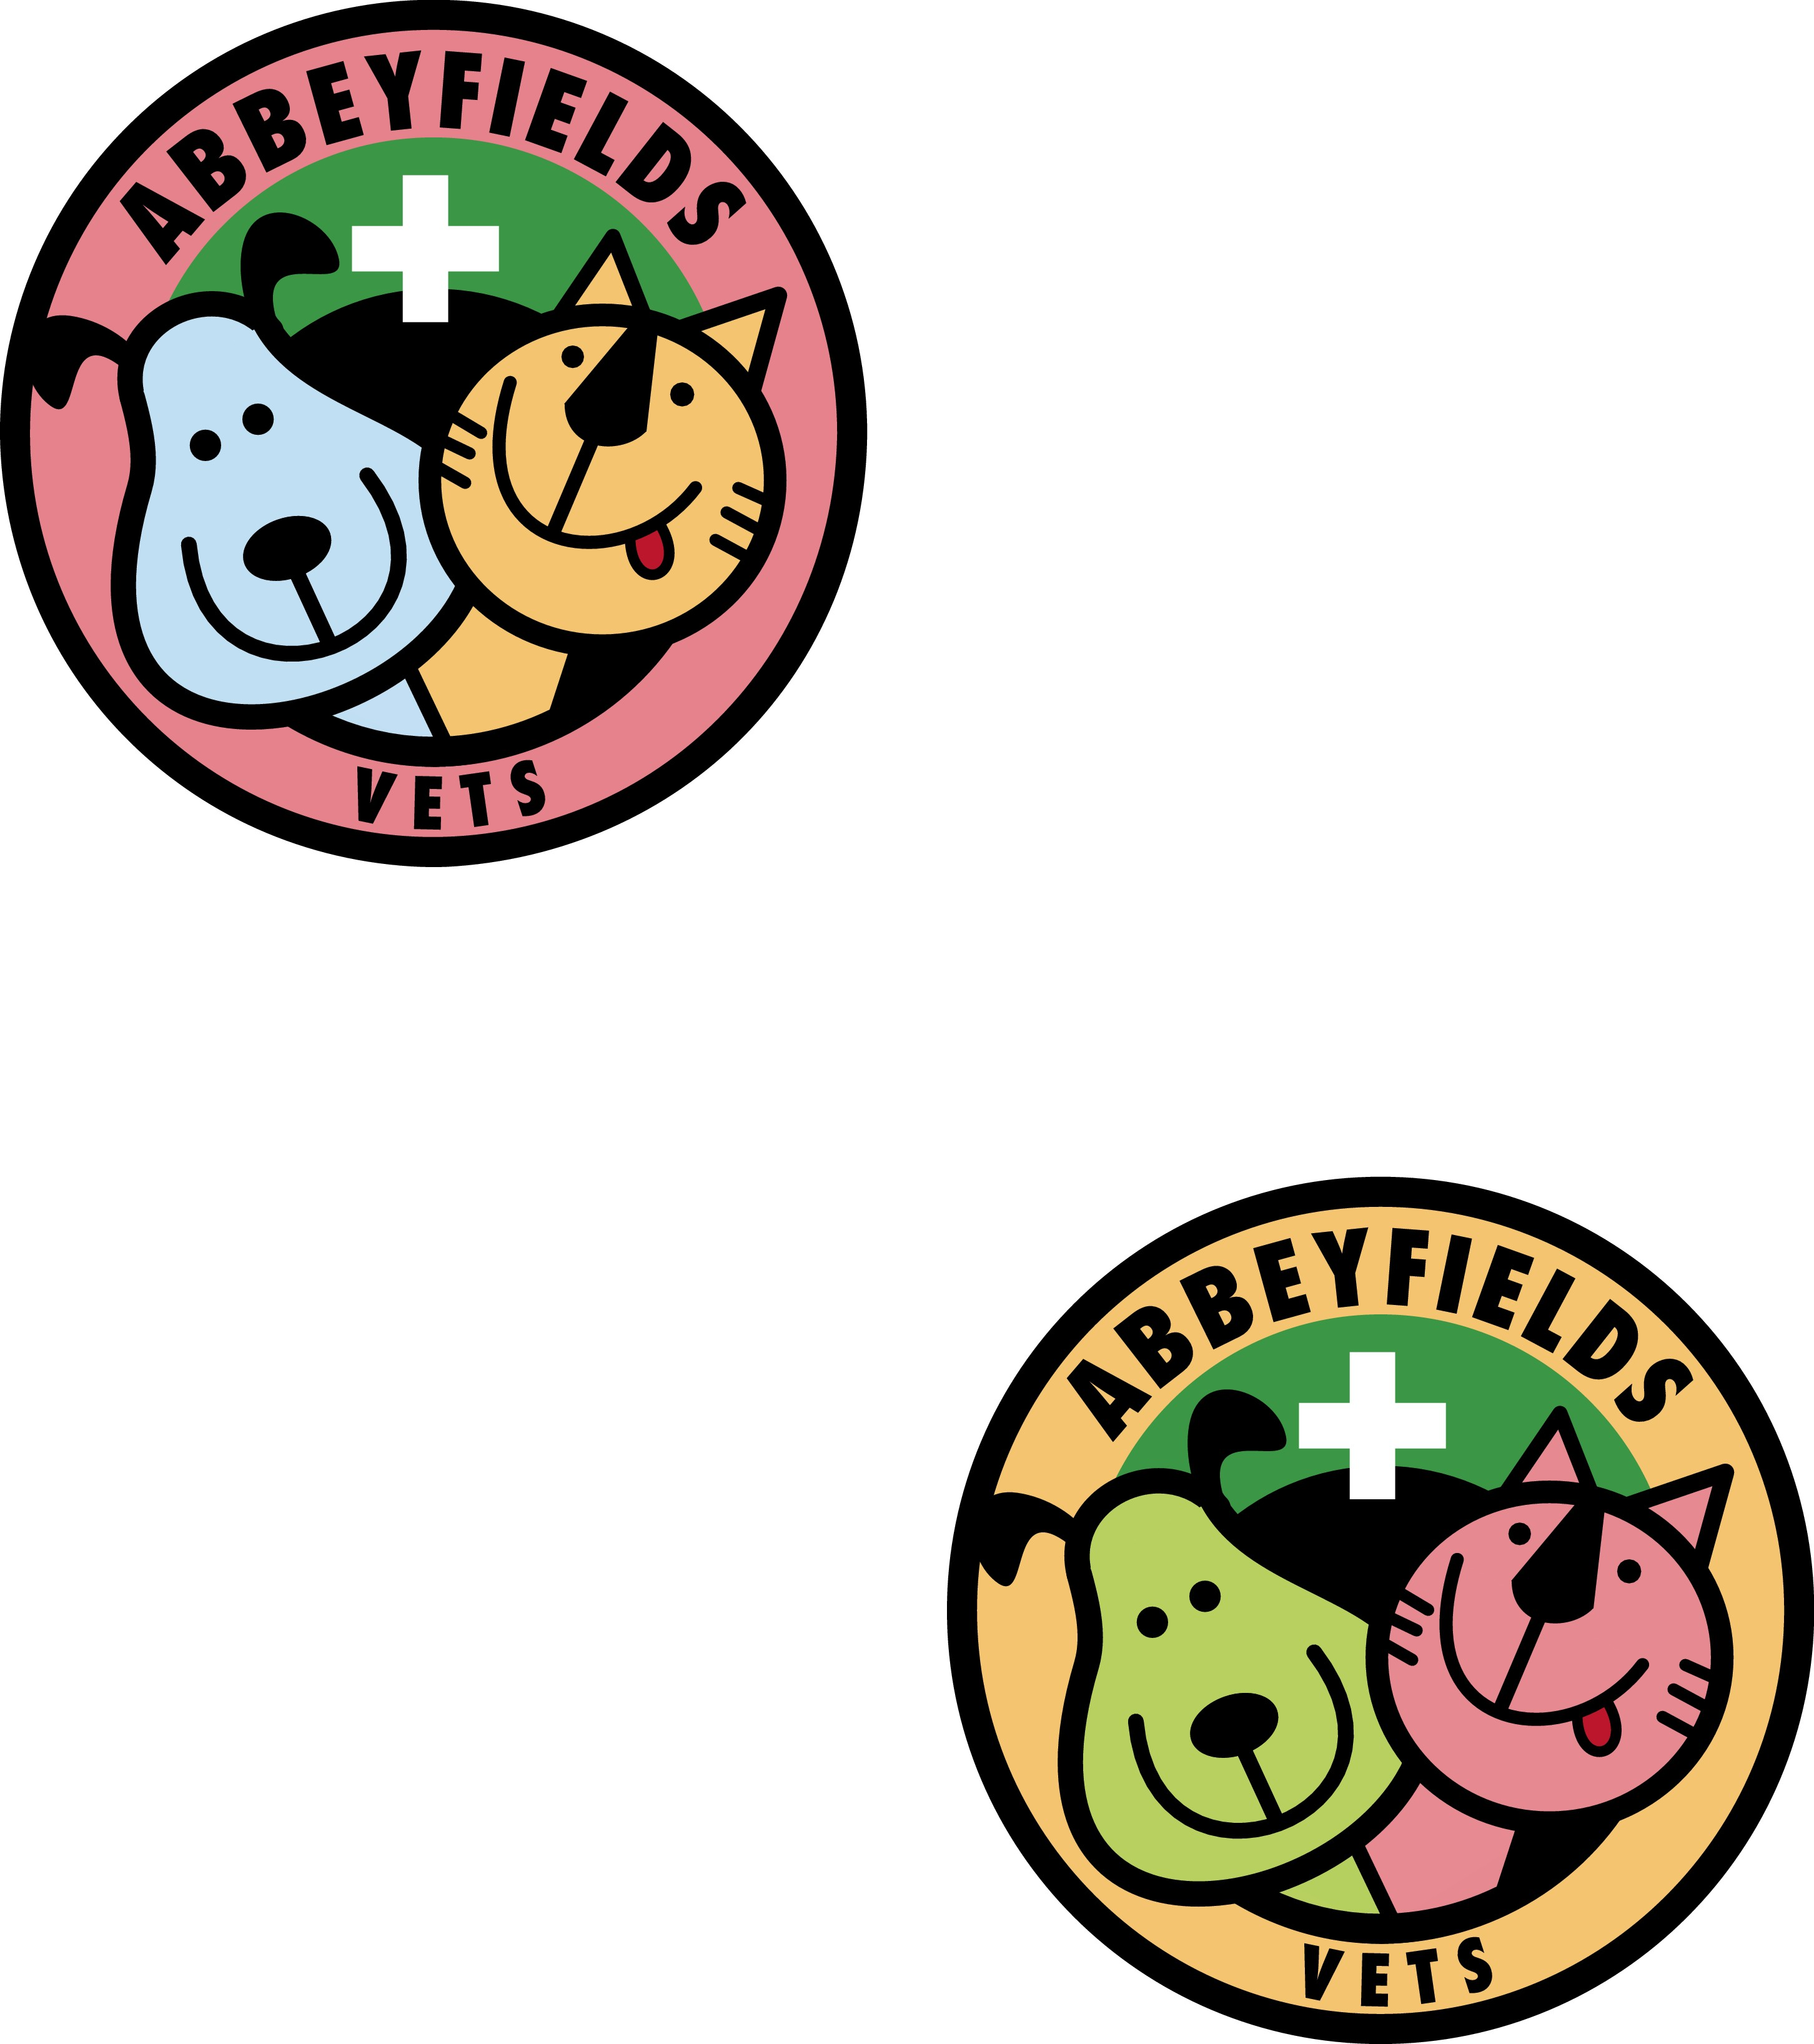 Create a Unique and Quirky   Veterinary Surgery logo reflecting personal care for Abbeyfields Vets